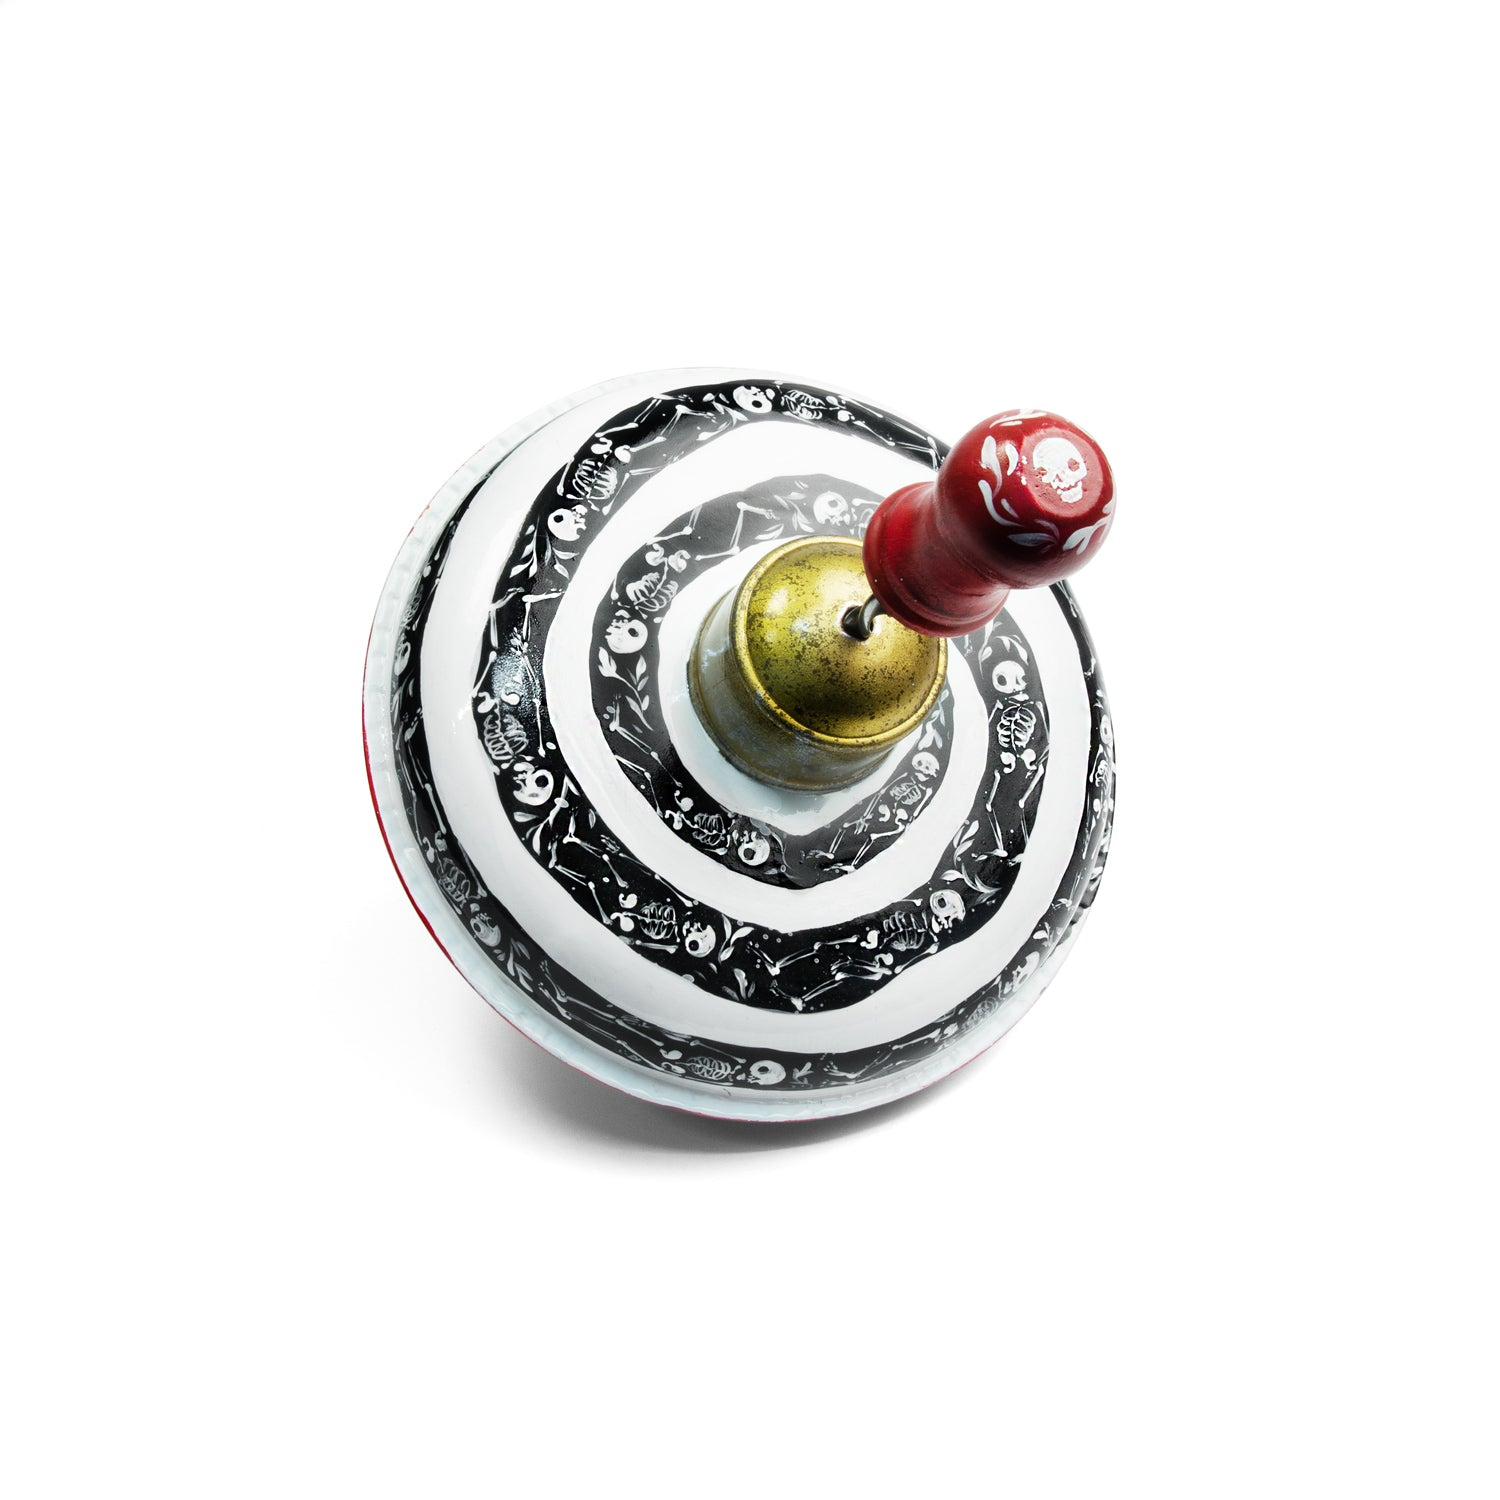 Tinplate Spinning top